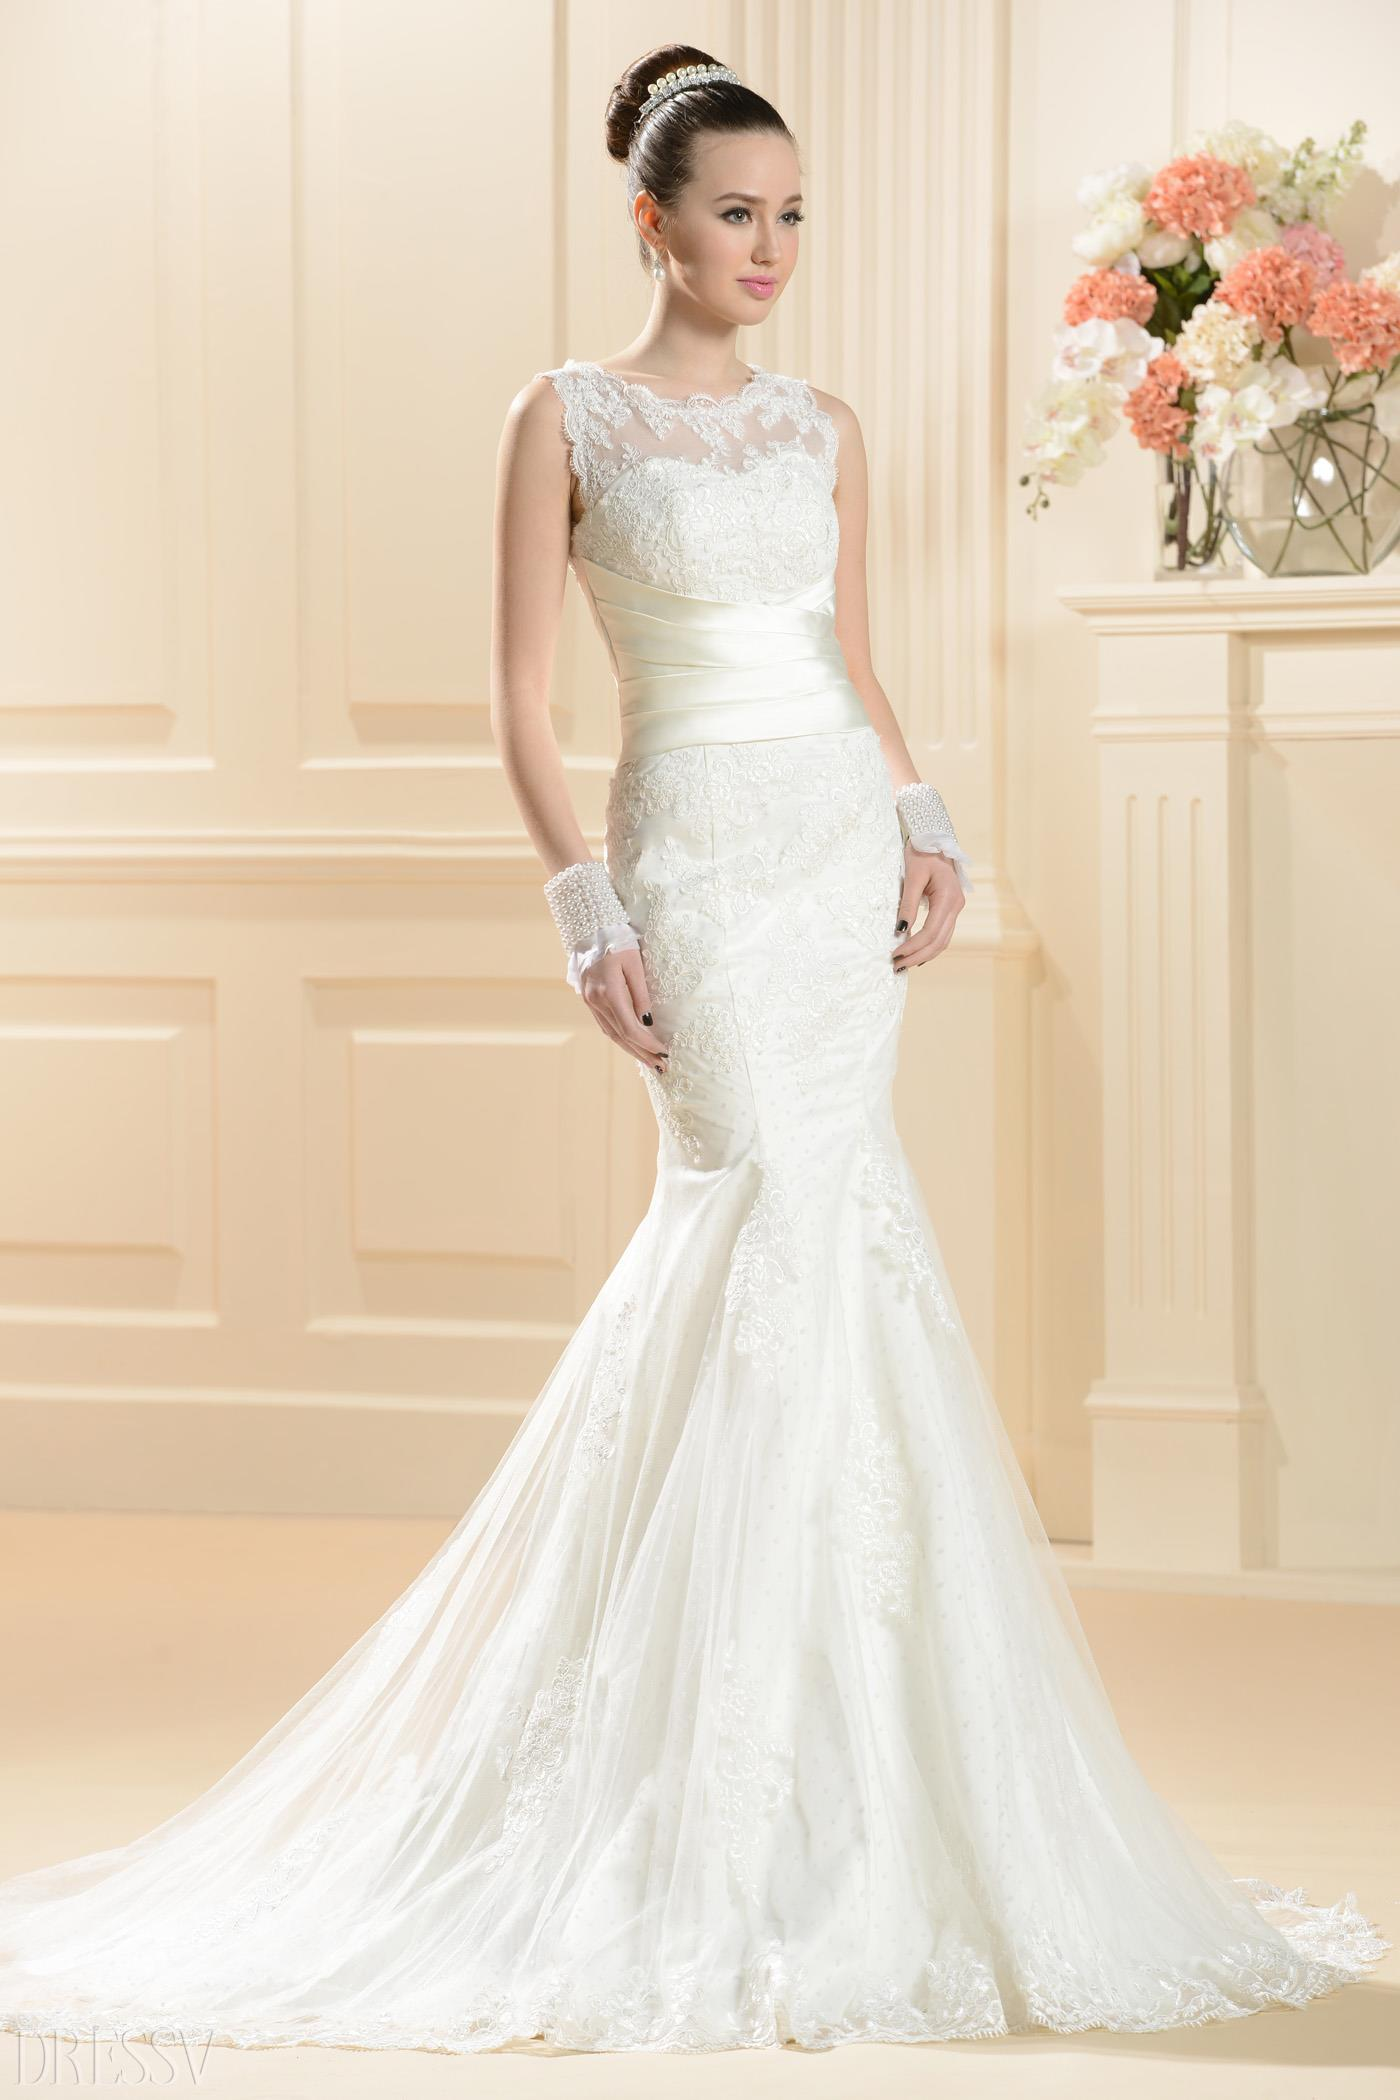 Are Mermaid Wedding Dresses A Trend Fashion Tag Blog